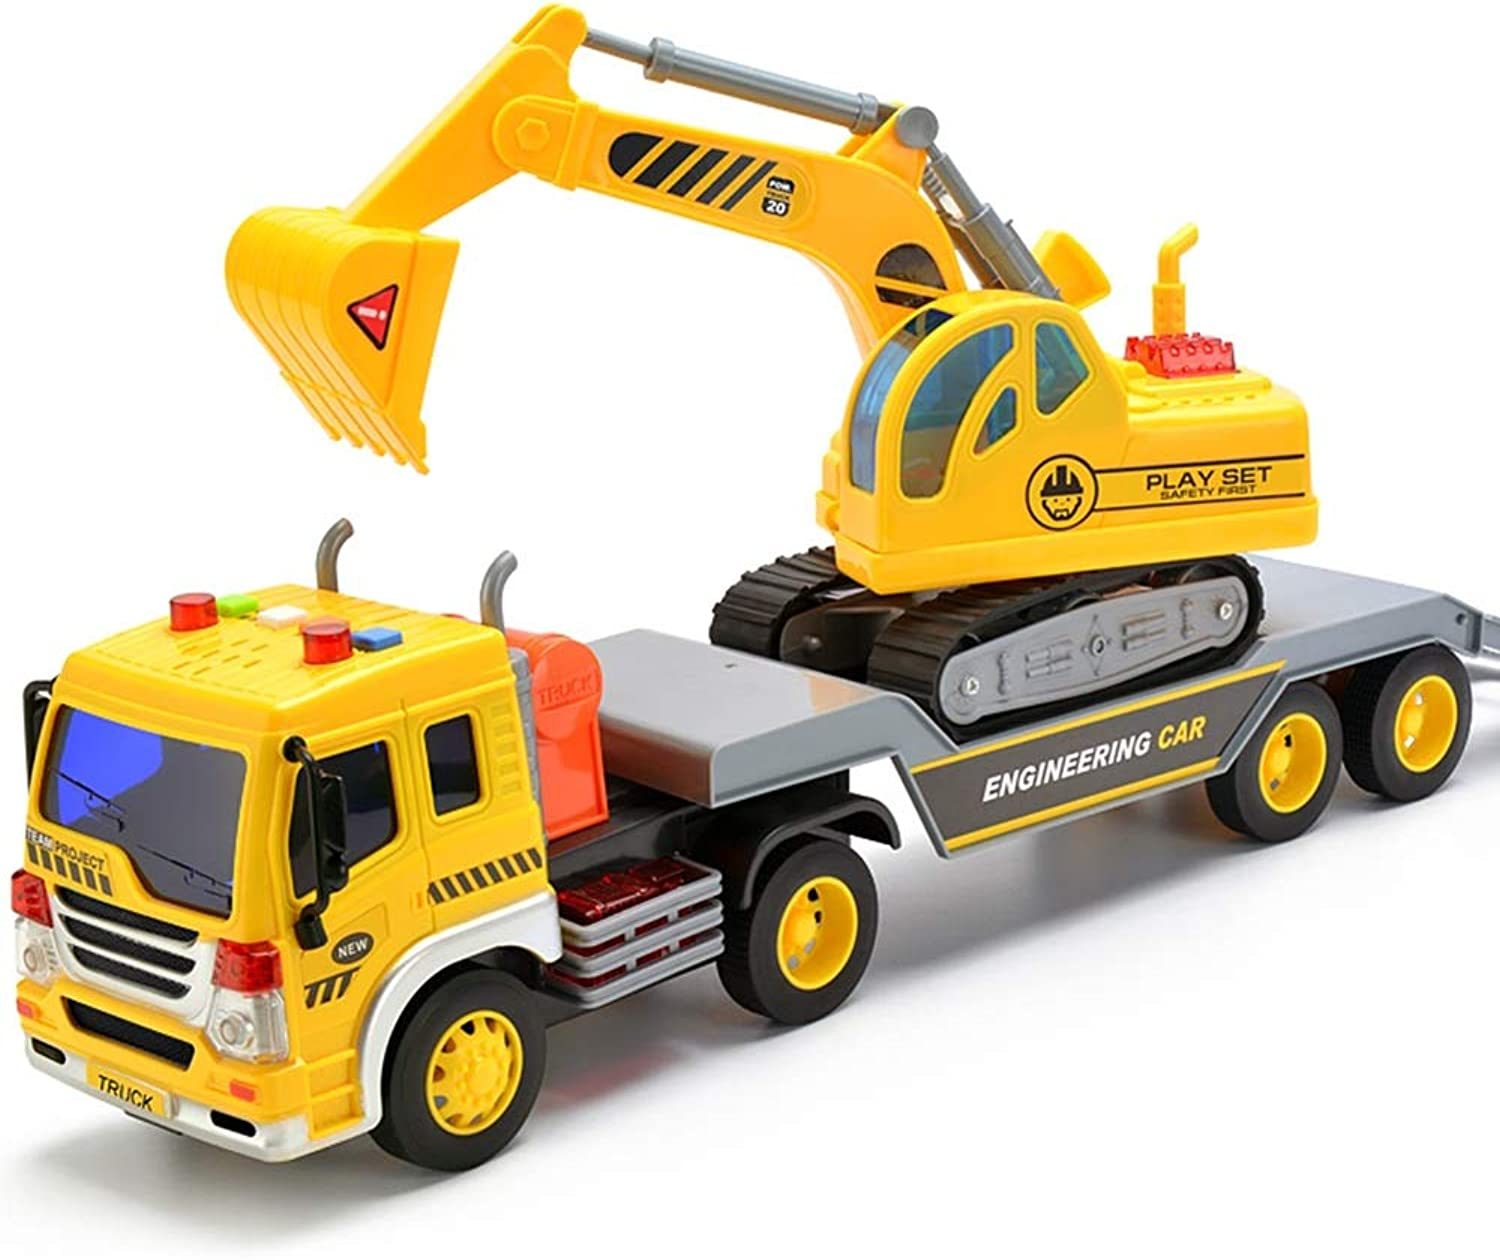 Xyanzi Baby Toys Friction Powered Flatbed Truck with Excavator Tractor  Push and Go Construction Toy for Boys and Girls with Lights and Sounds  Realistic 1 16 Scale Design